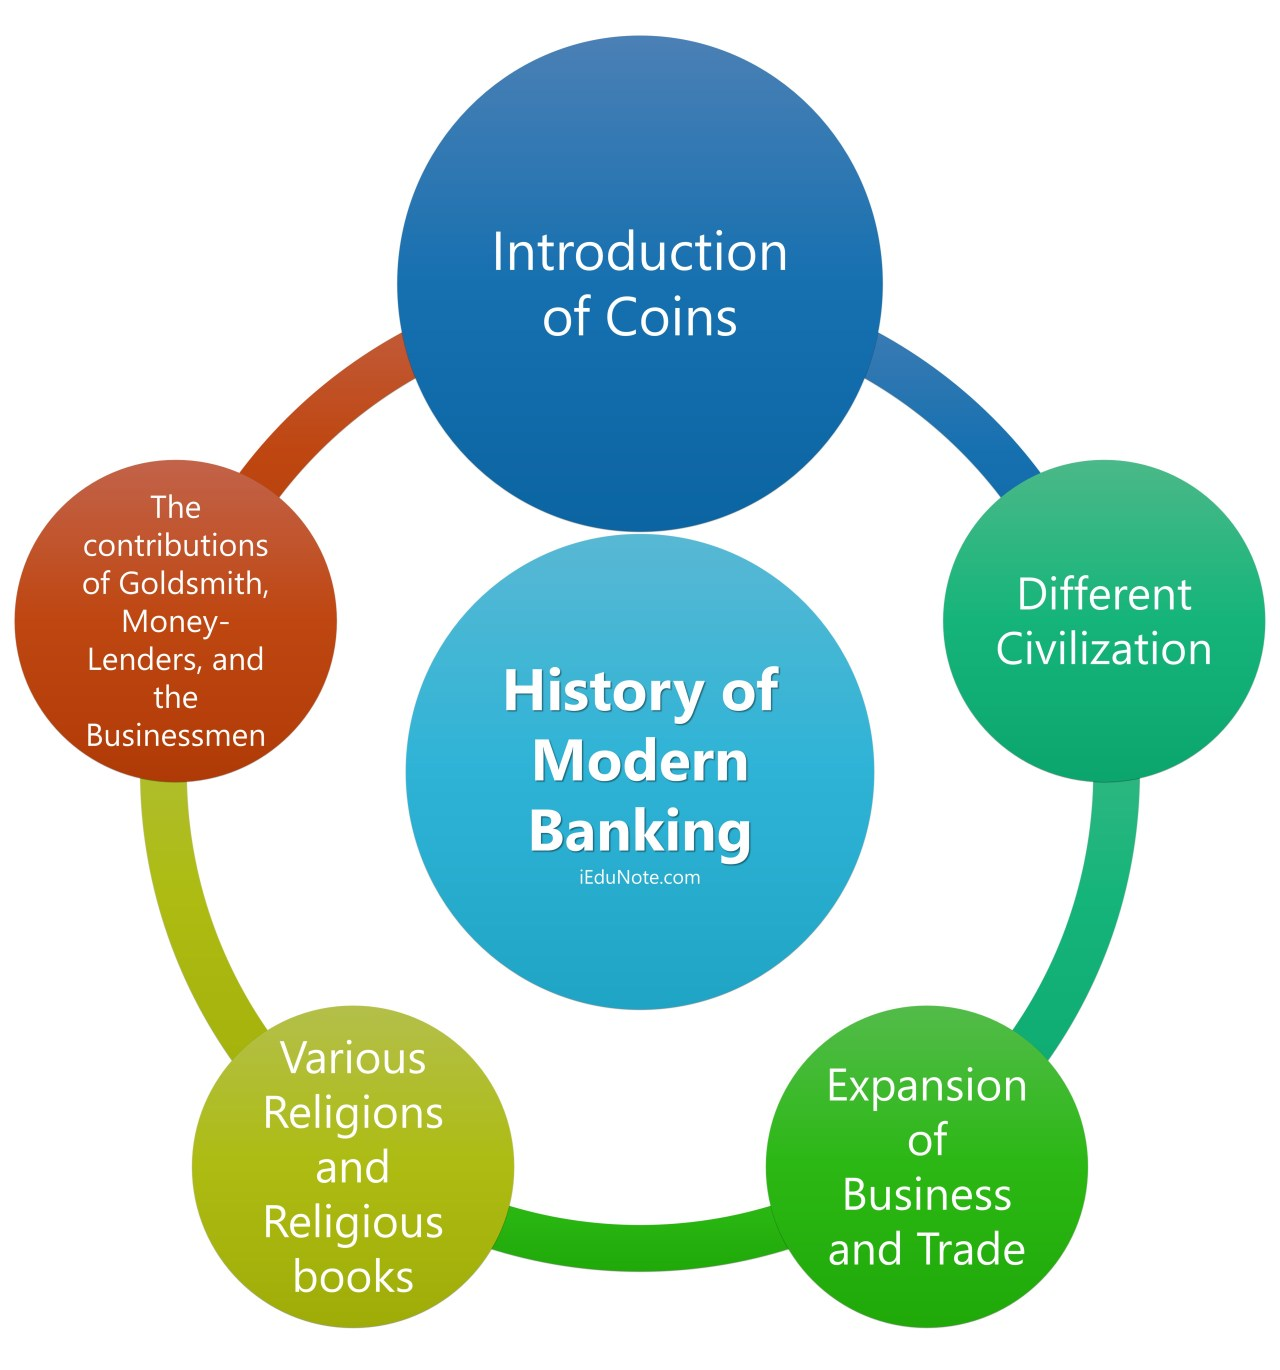 History of Modern Banking